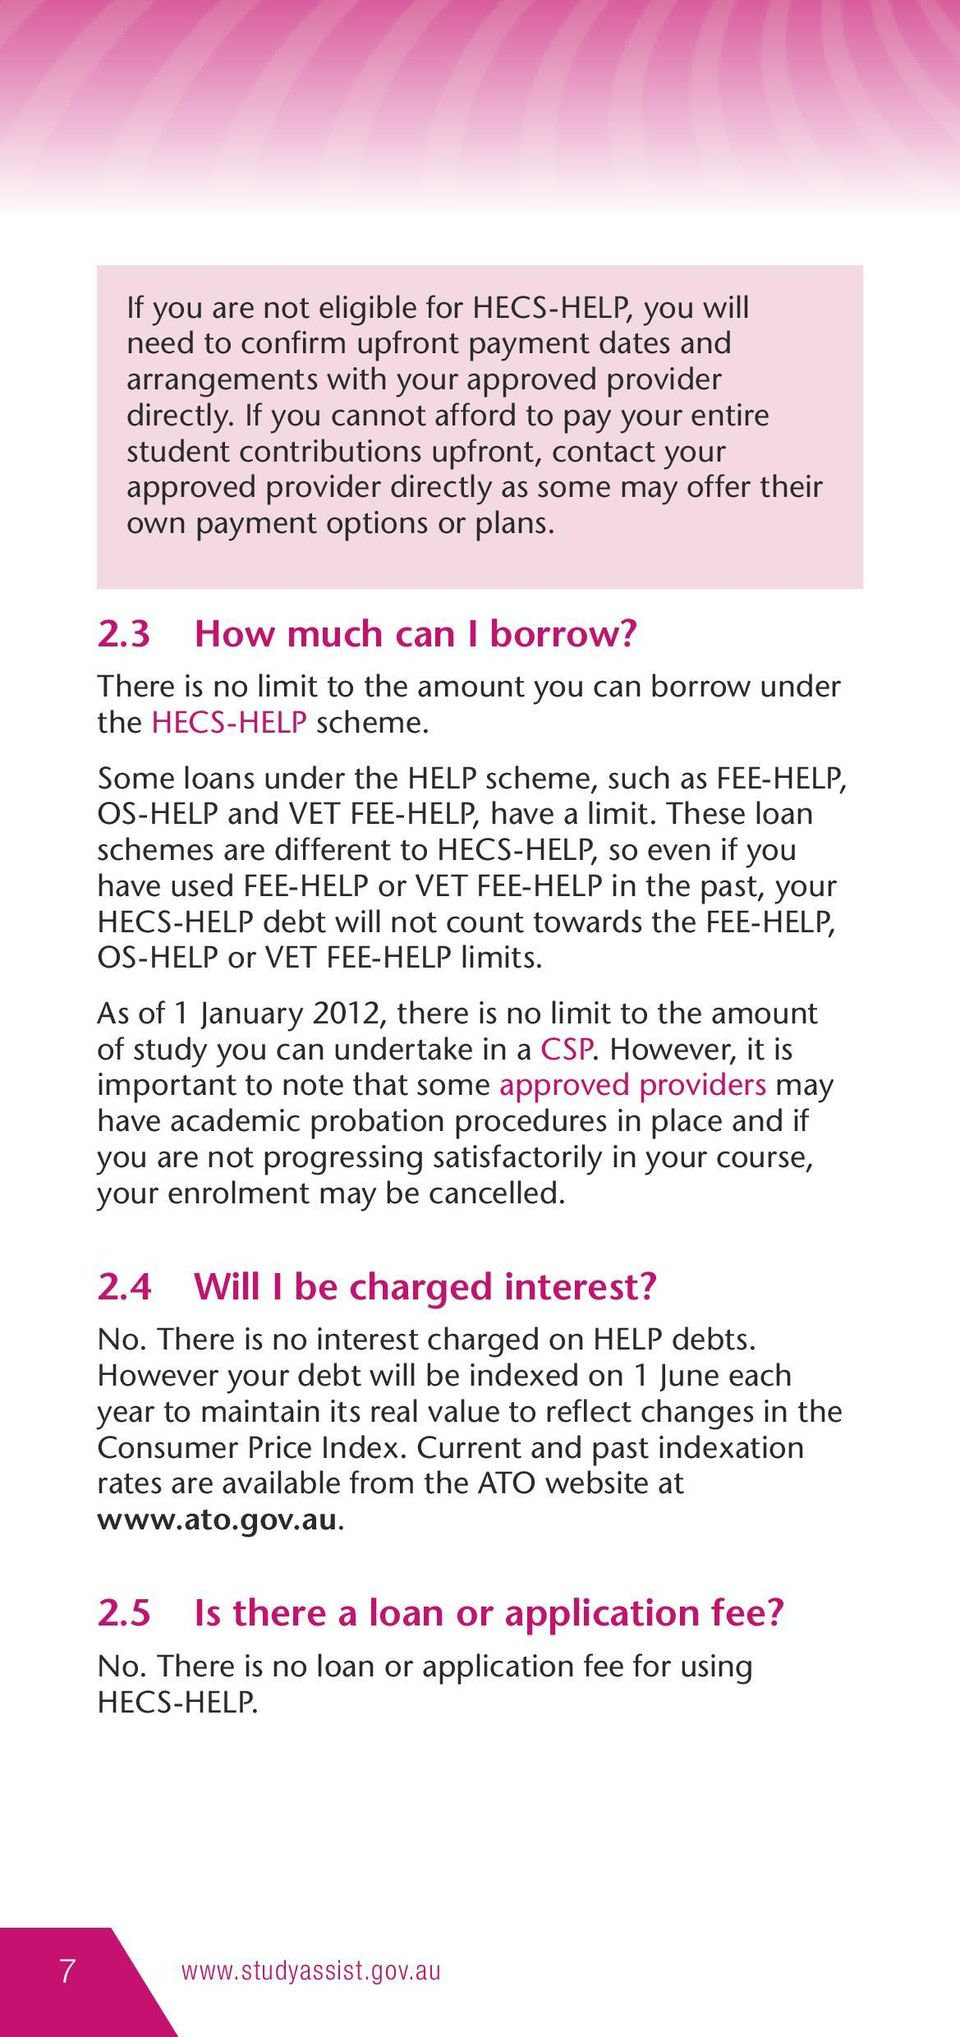 There is no limit to the amount you can borrow under the HECS-HELP scheme. Some loans under the HELP scheme, such as FEE-HELP, OS-HELP and VET FEE-HELP, have a limit.